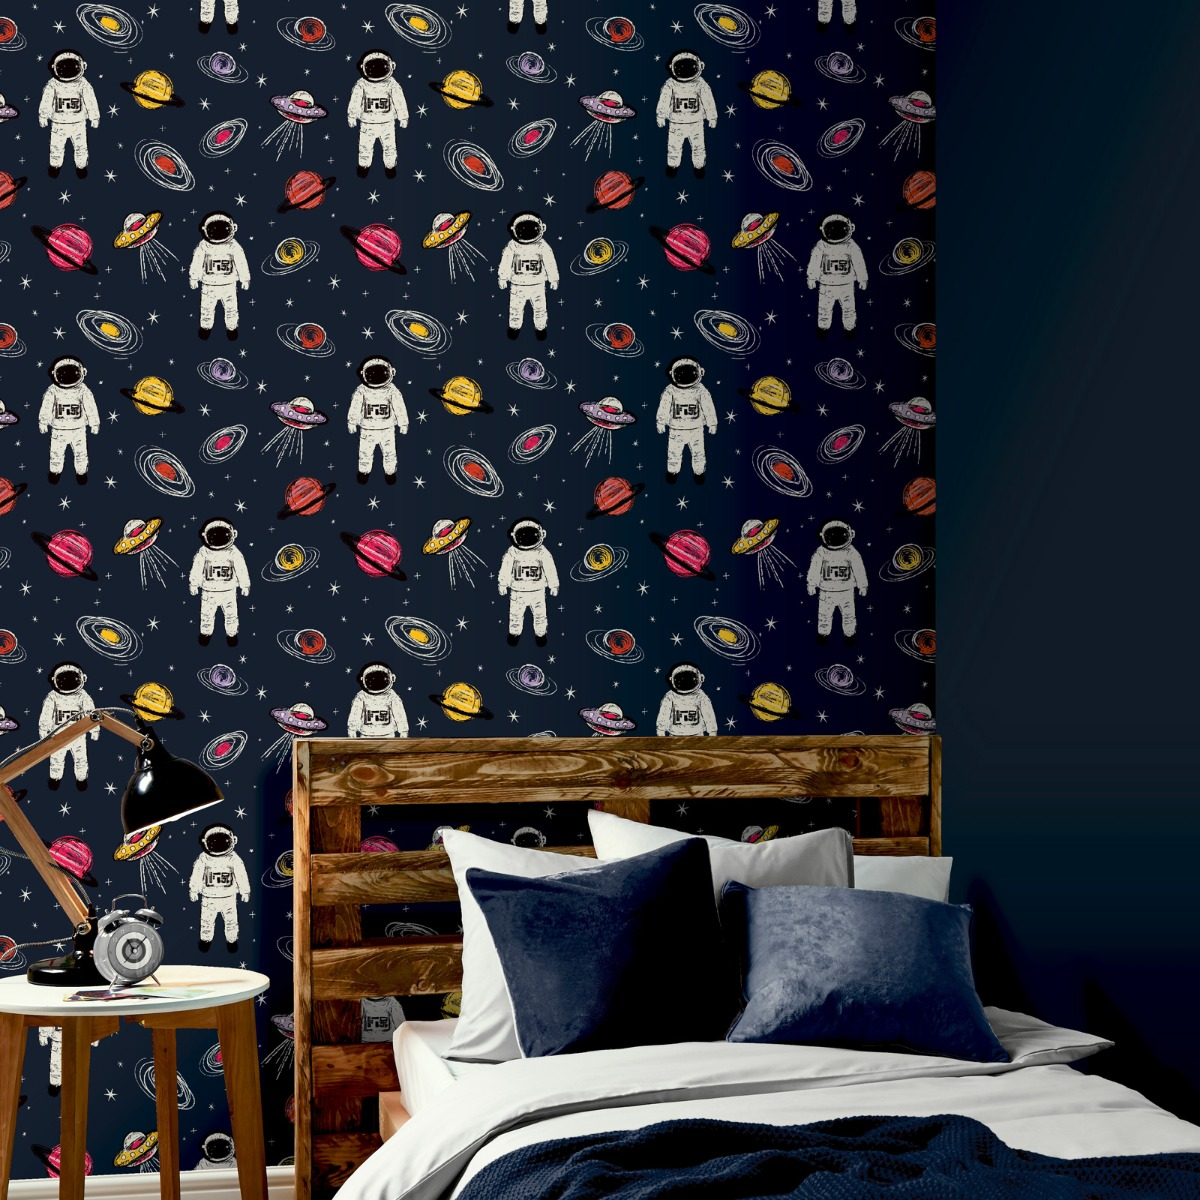 Spaceman Astronaut Wallpaper Navy Arthouse 697901